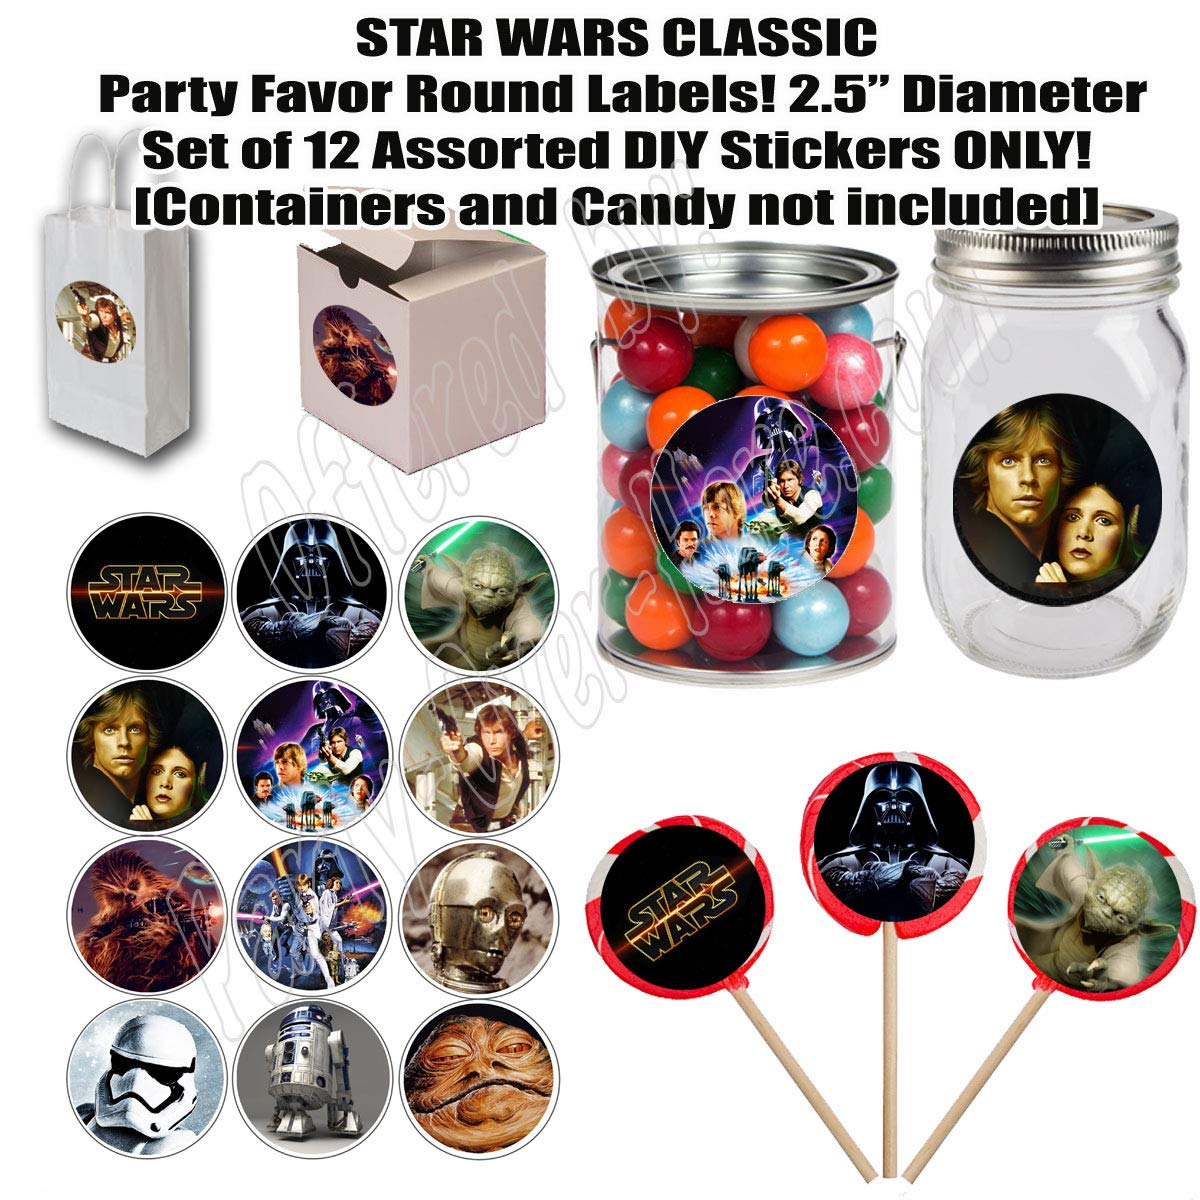 """A New Hope Empire Strikes Back Return of The Jedi Party Over Here Large 2.5/"""" Round Circle Stickers to Place onto Party Favor Bags Cards Boxes or Containers -12 pcs Star Wars Classic Stickers"""